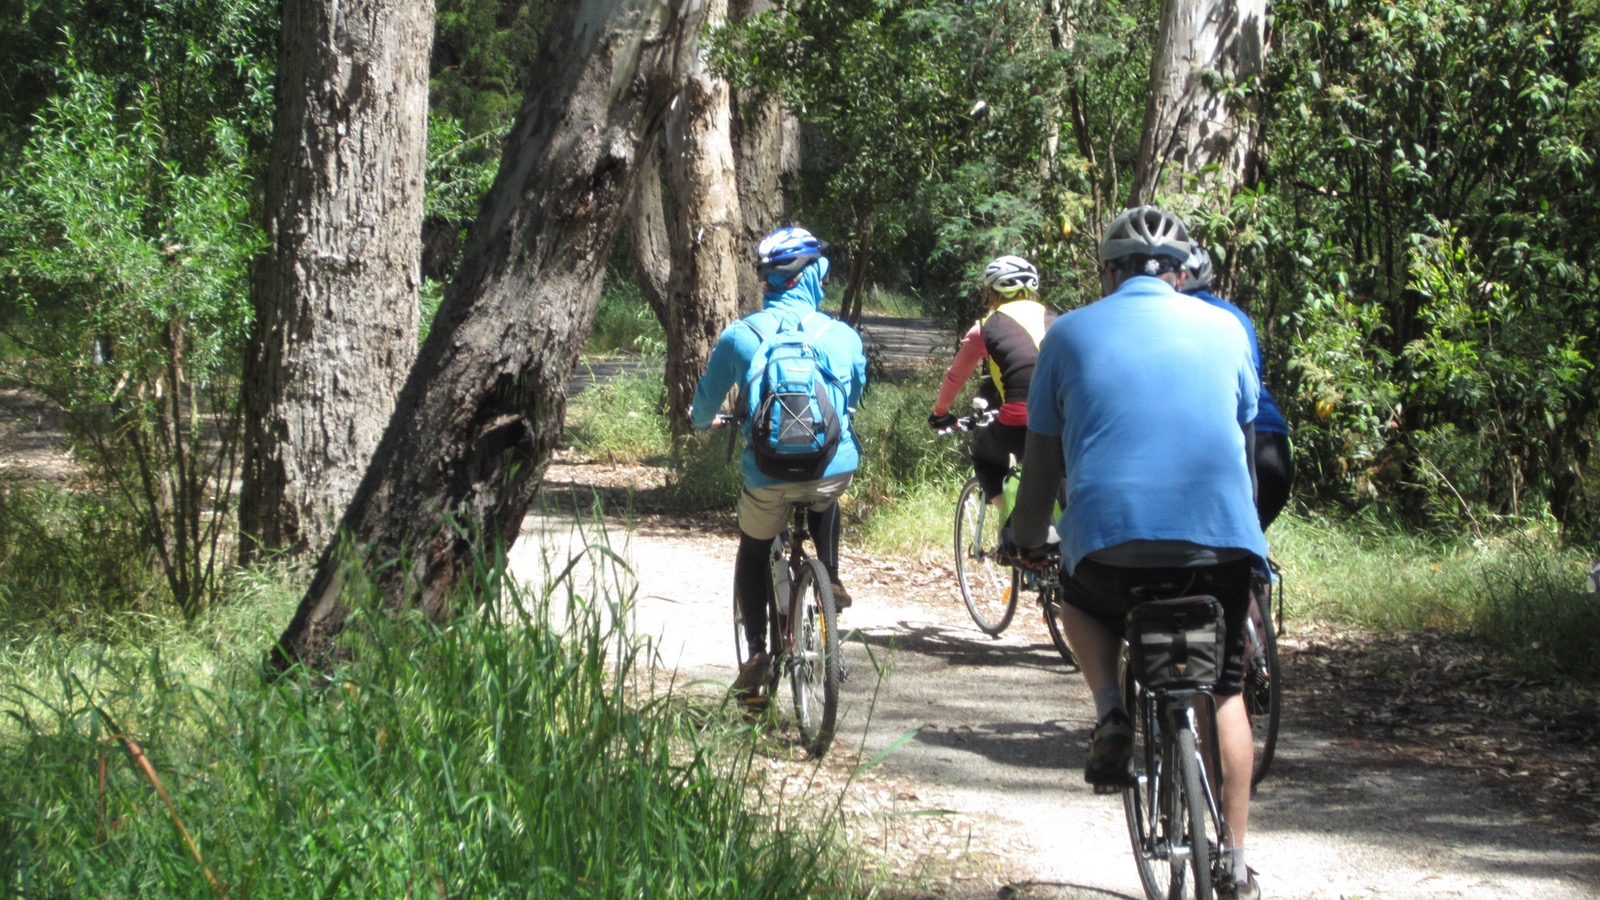 Take a hire bike along the Myrtleford Loop Trail along the Ovens River